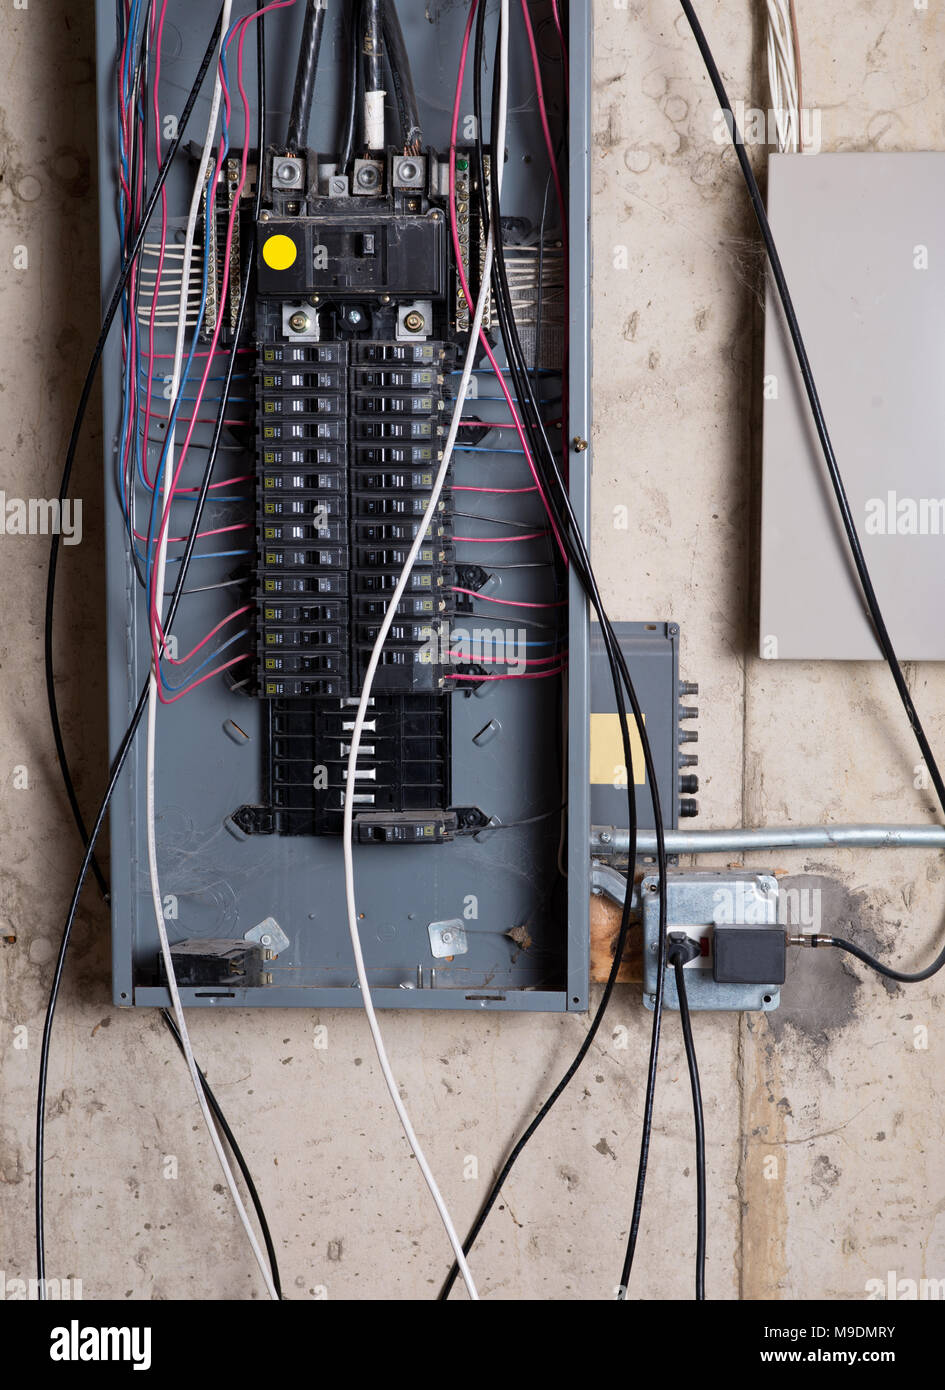 electrical service panel and branch circuit wiring in the basement rh alamy com service entrance panel wiring diagram service entrance panel wiring diagram